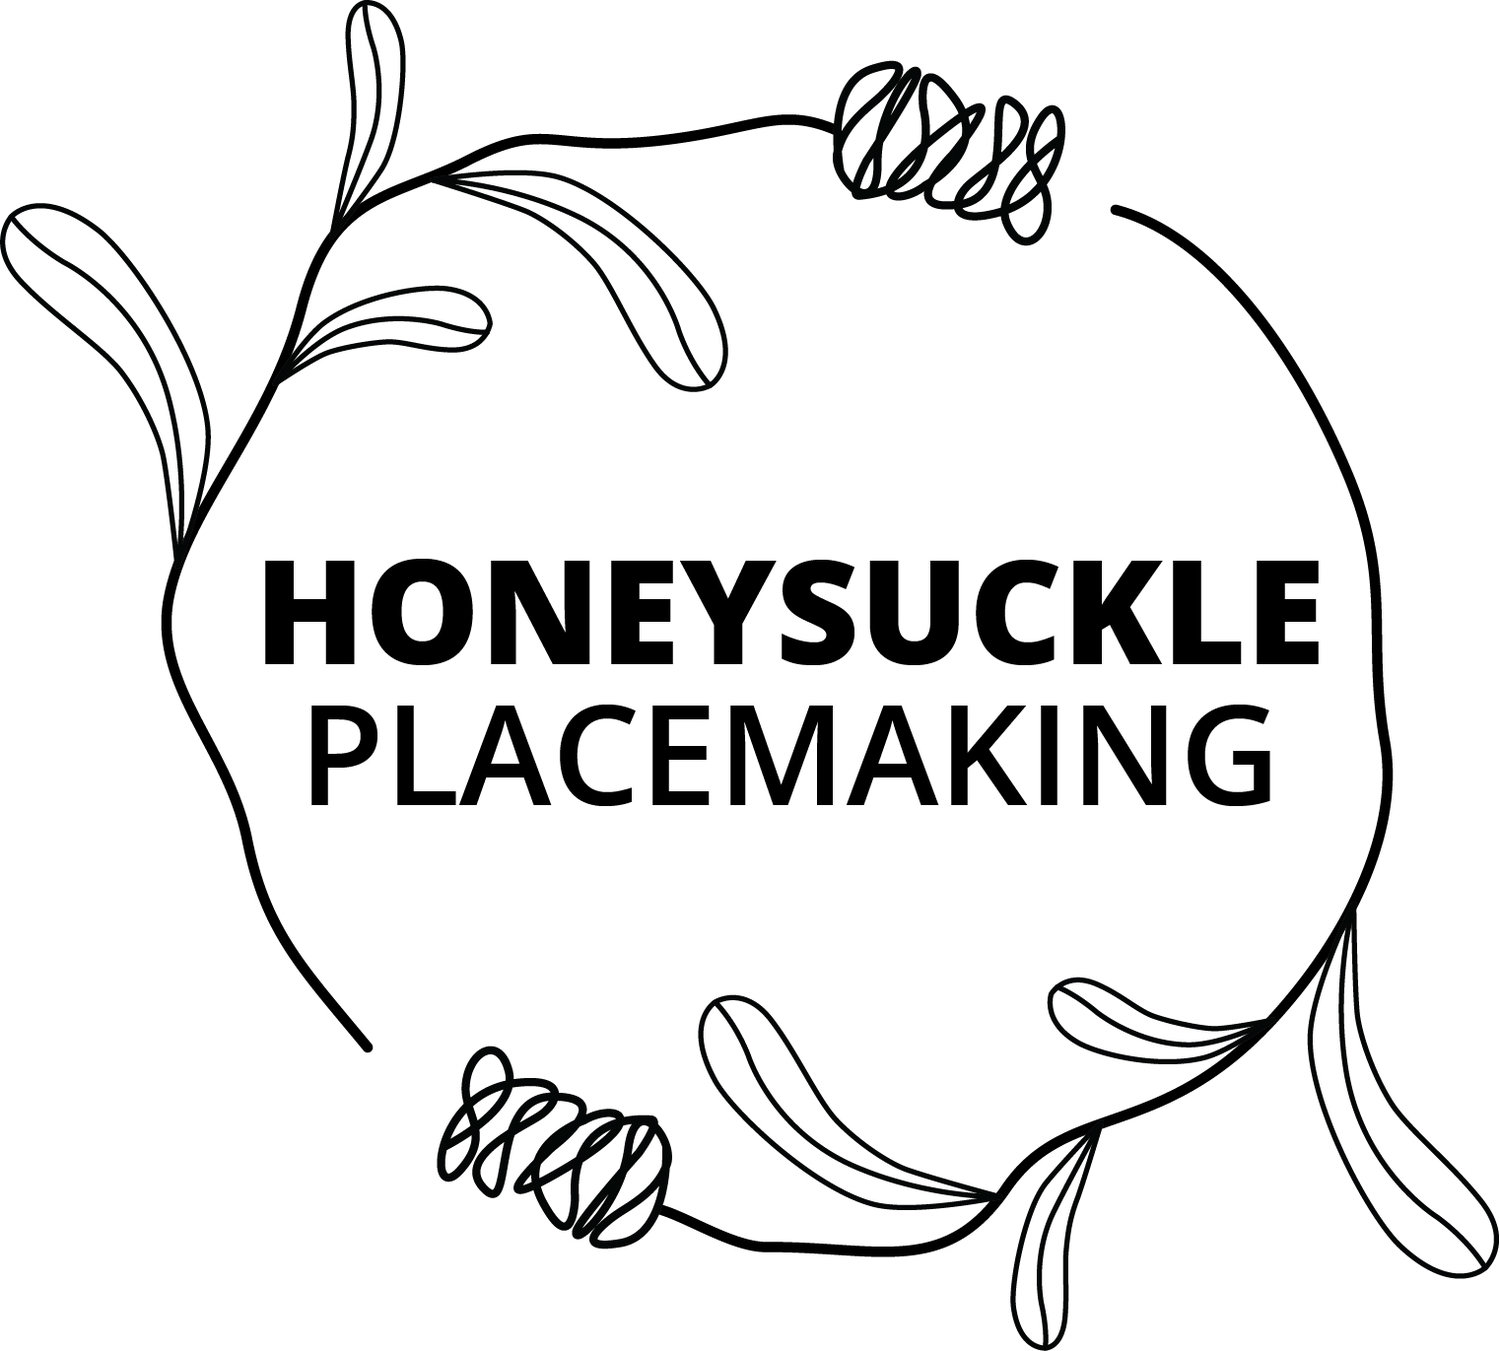 Honeysuckle Placemaking